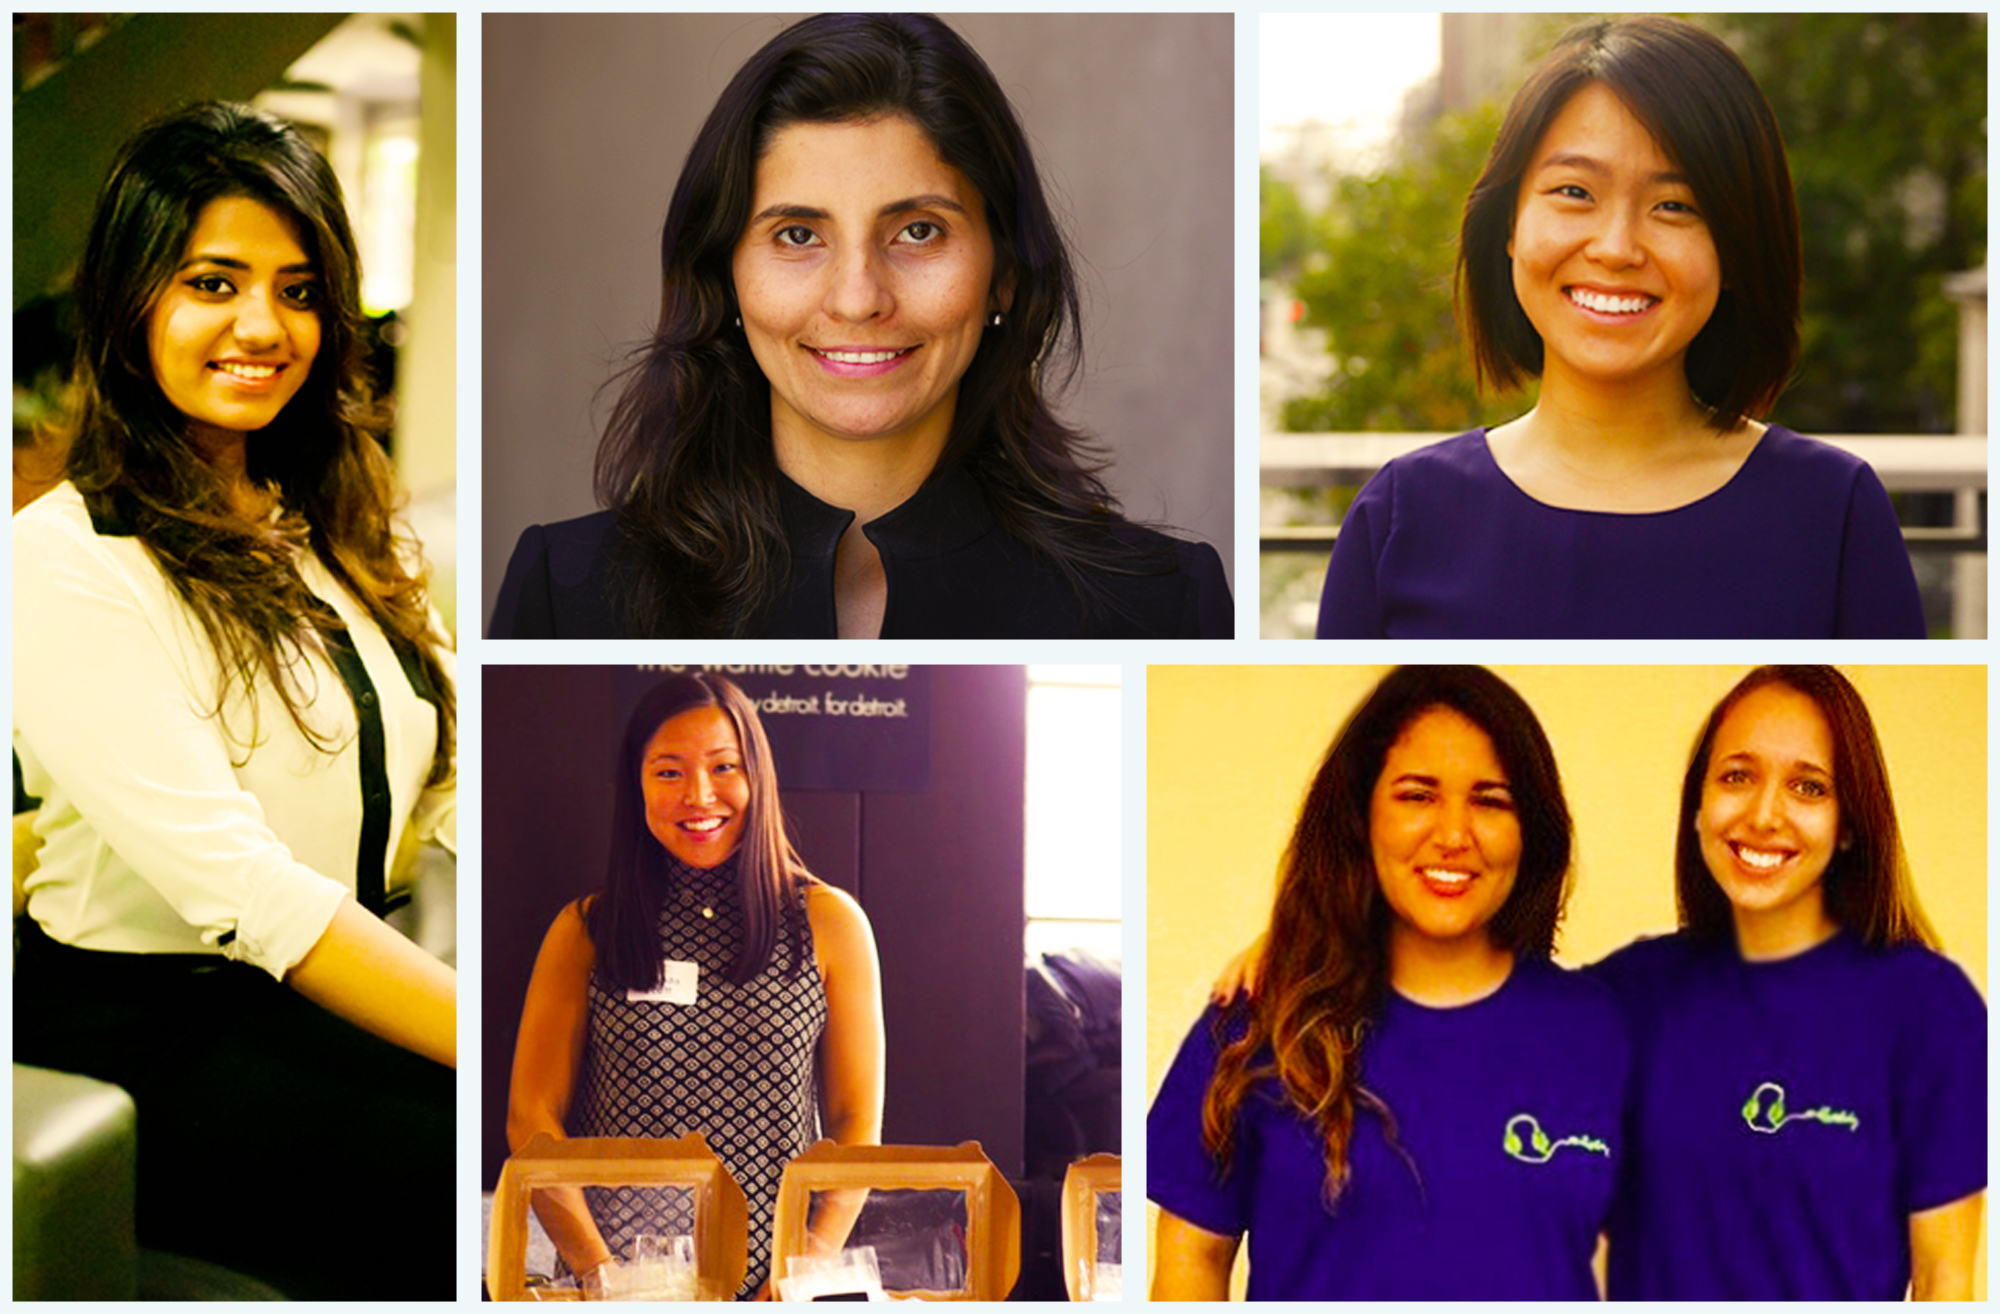 Female entrepreneurs who founded businesses in college or soon after